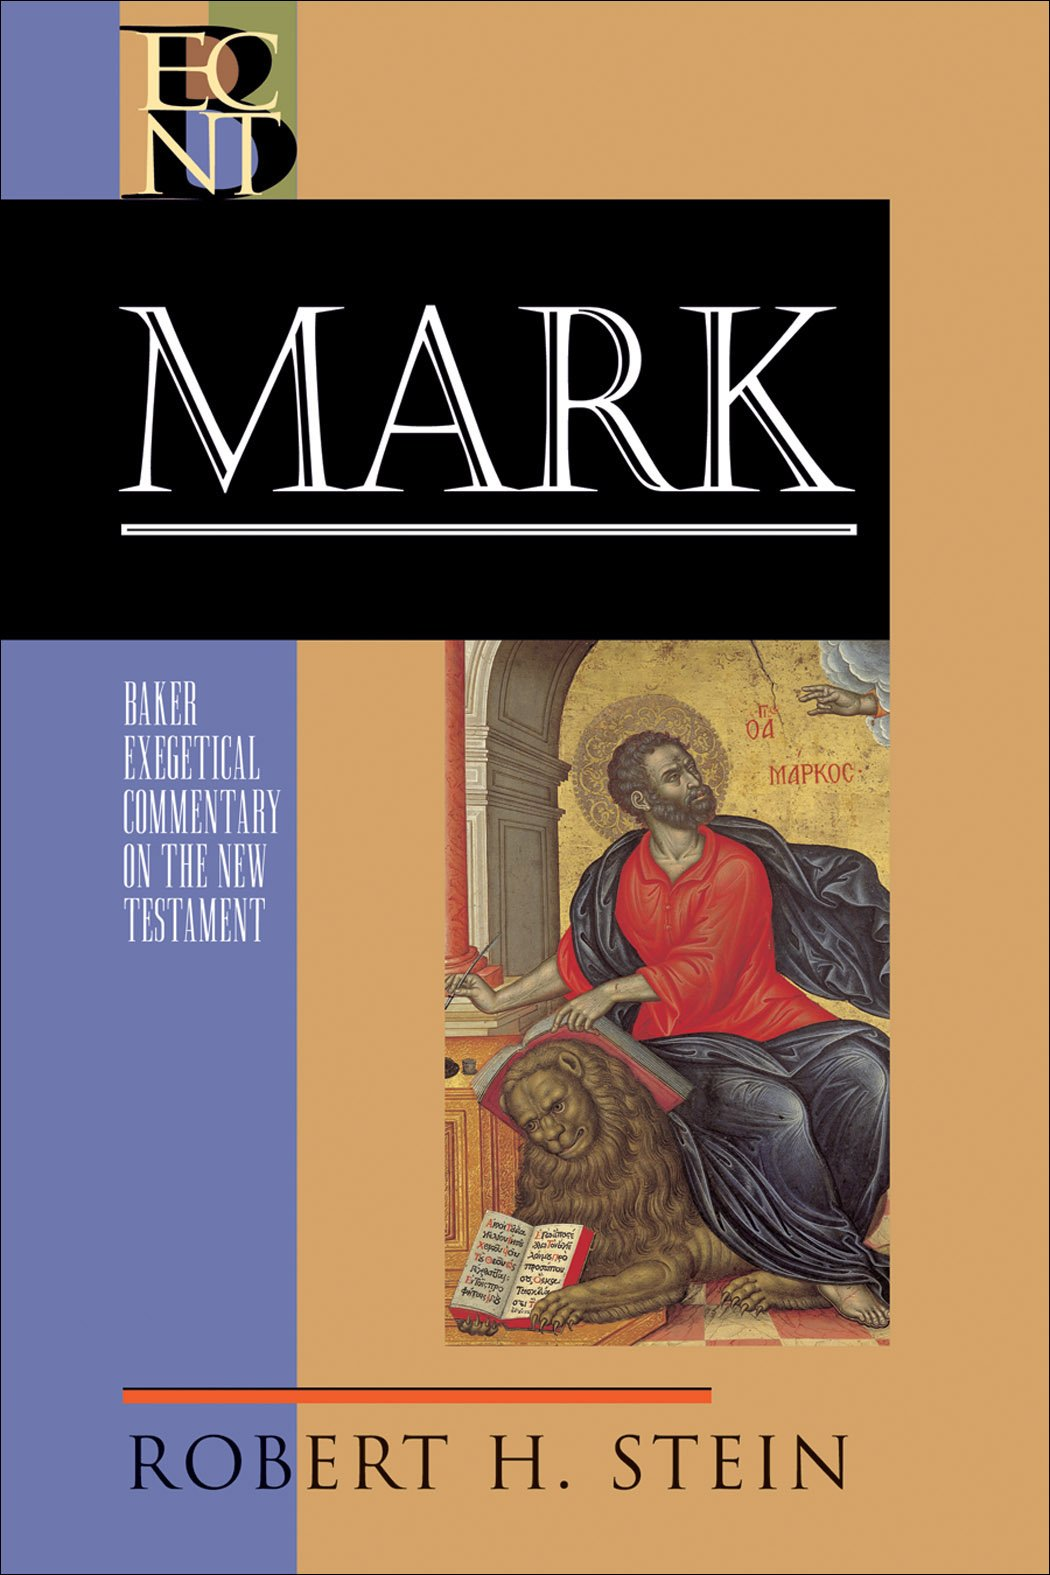 An Introduction To The Parables Of Jesus - Isbn:9780664243906 - image 11